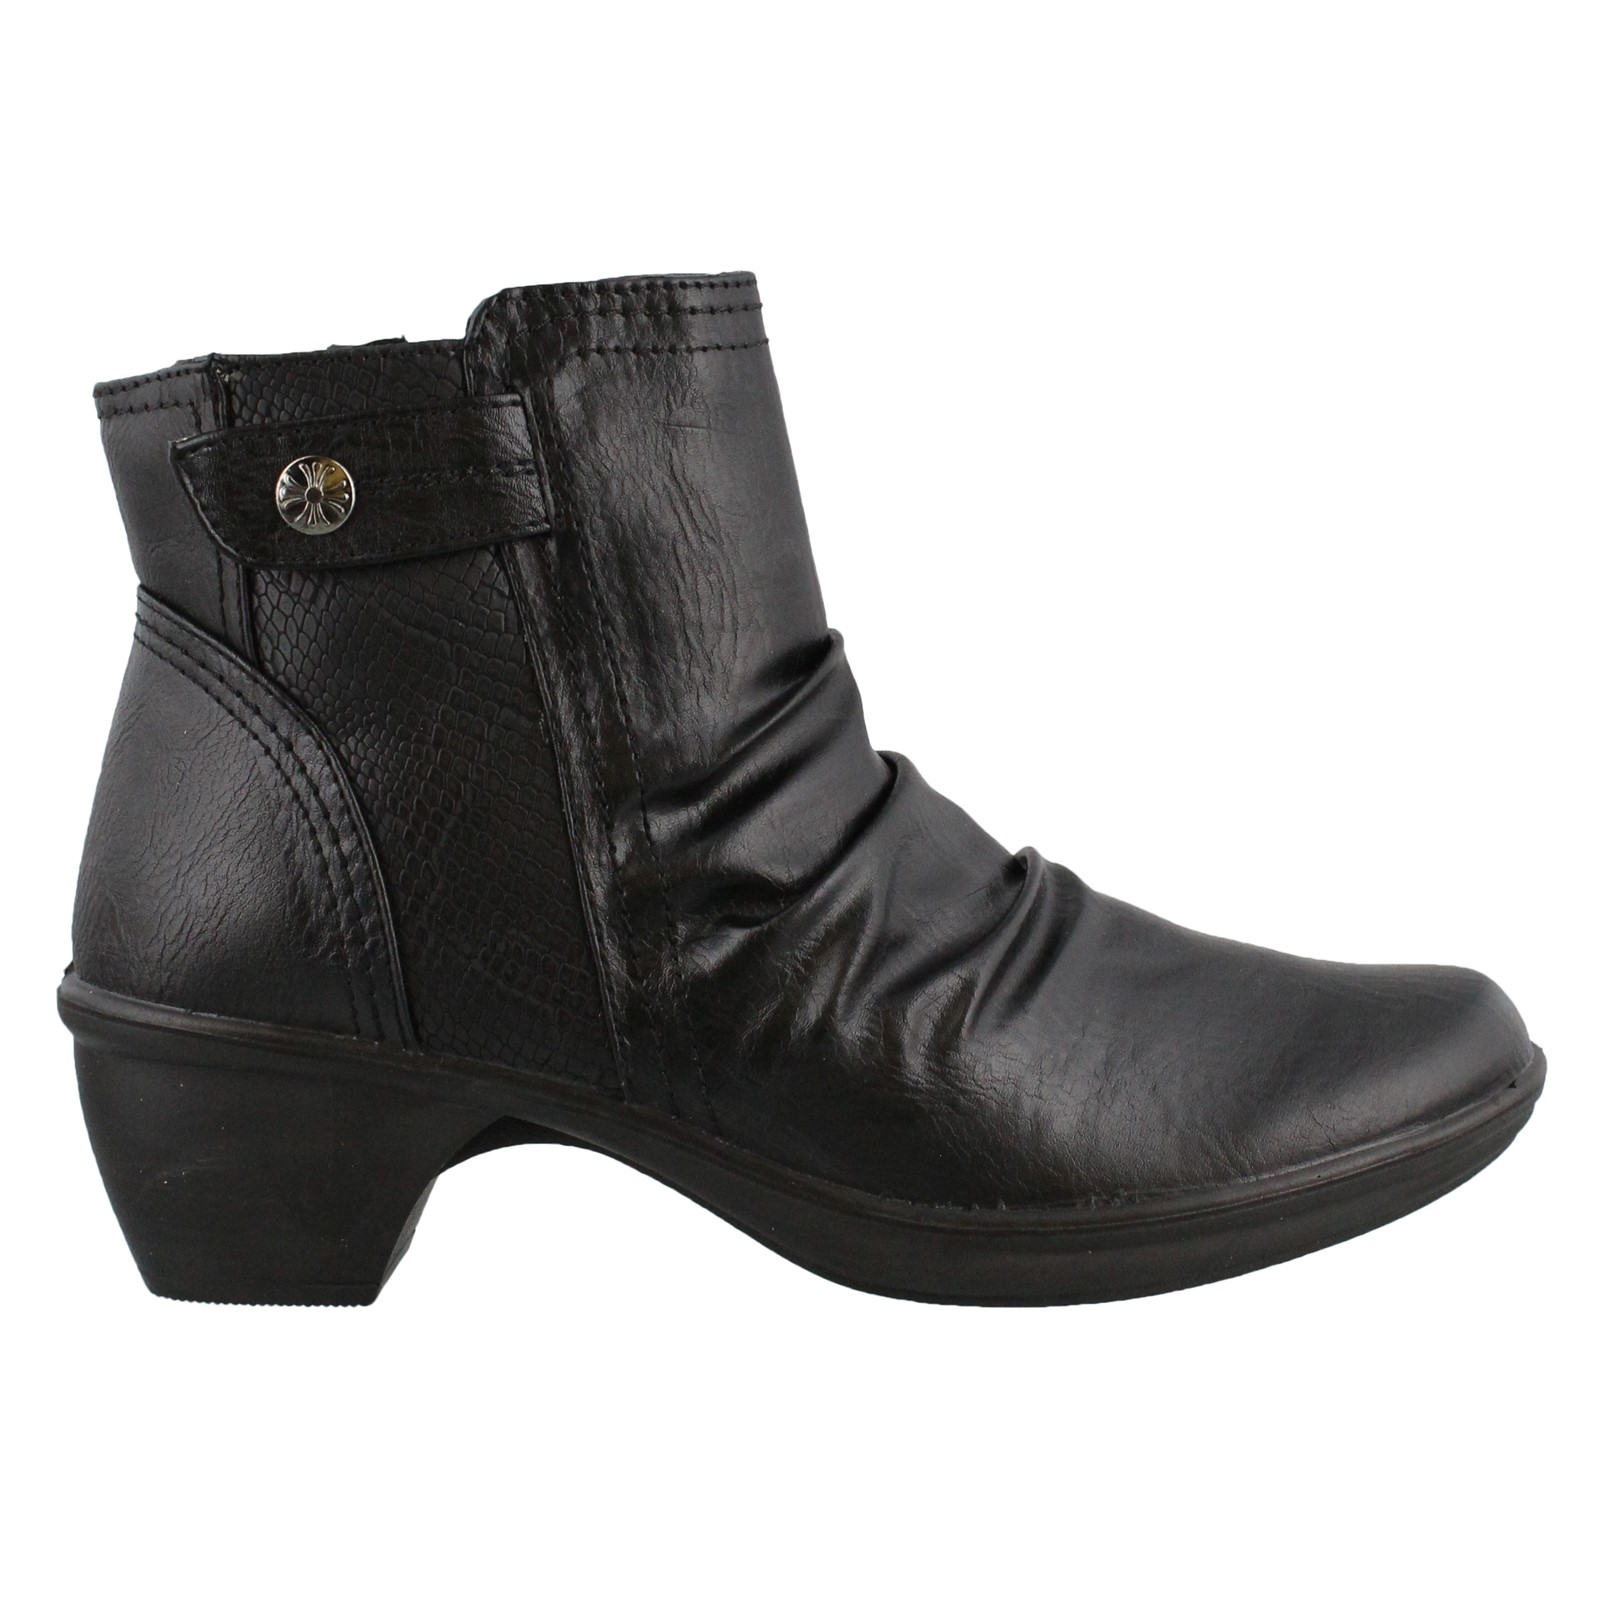 Women's Easy Street, Draft Ankle Boots